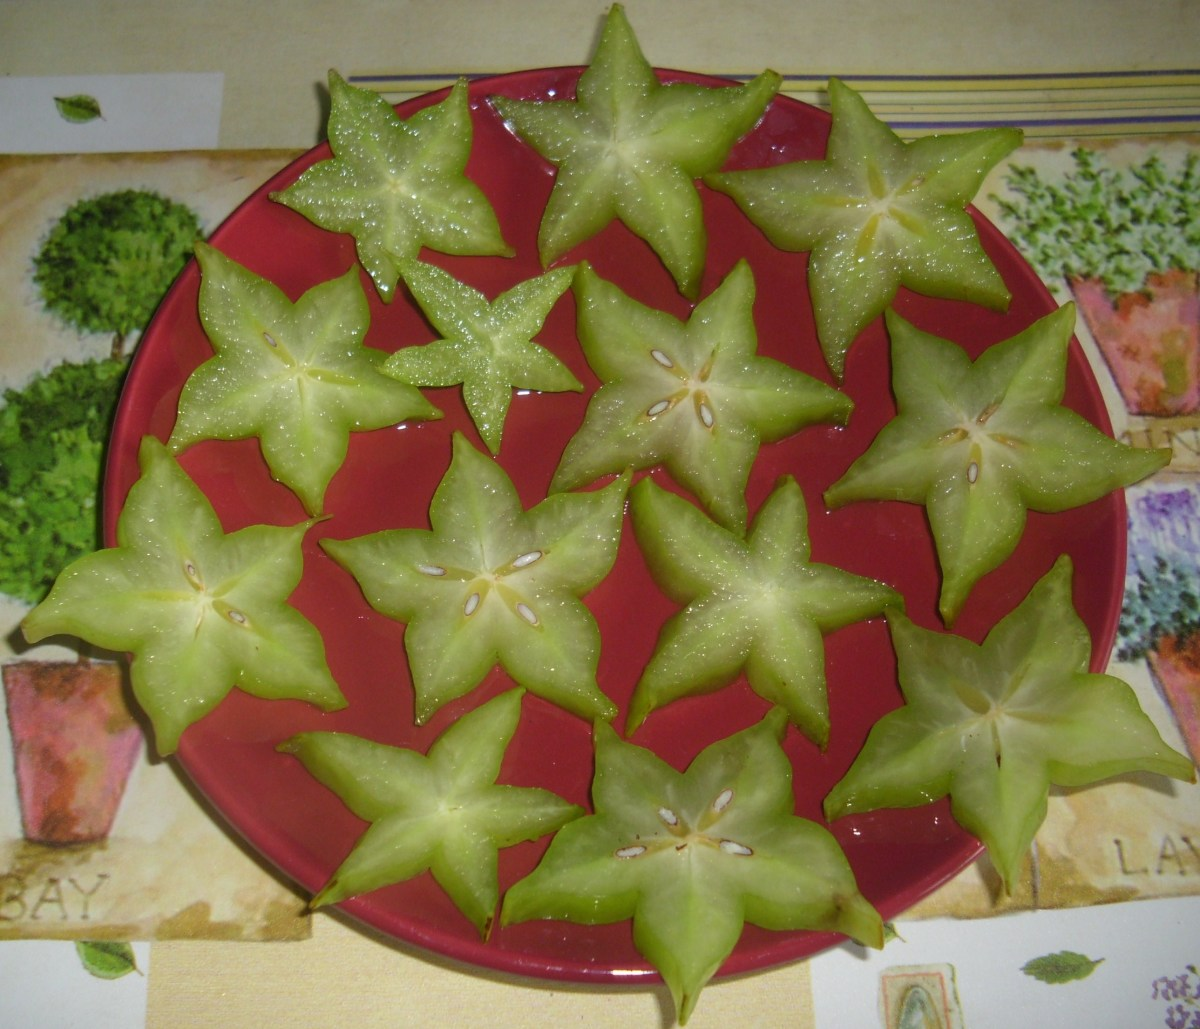 Sliced Star Fruit, Carambola or Balimbing